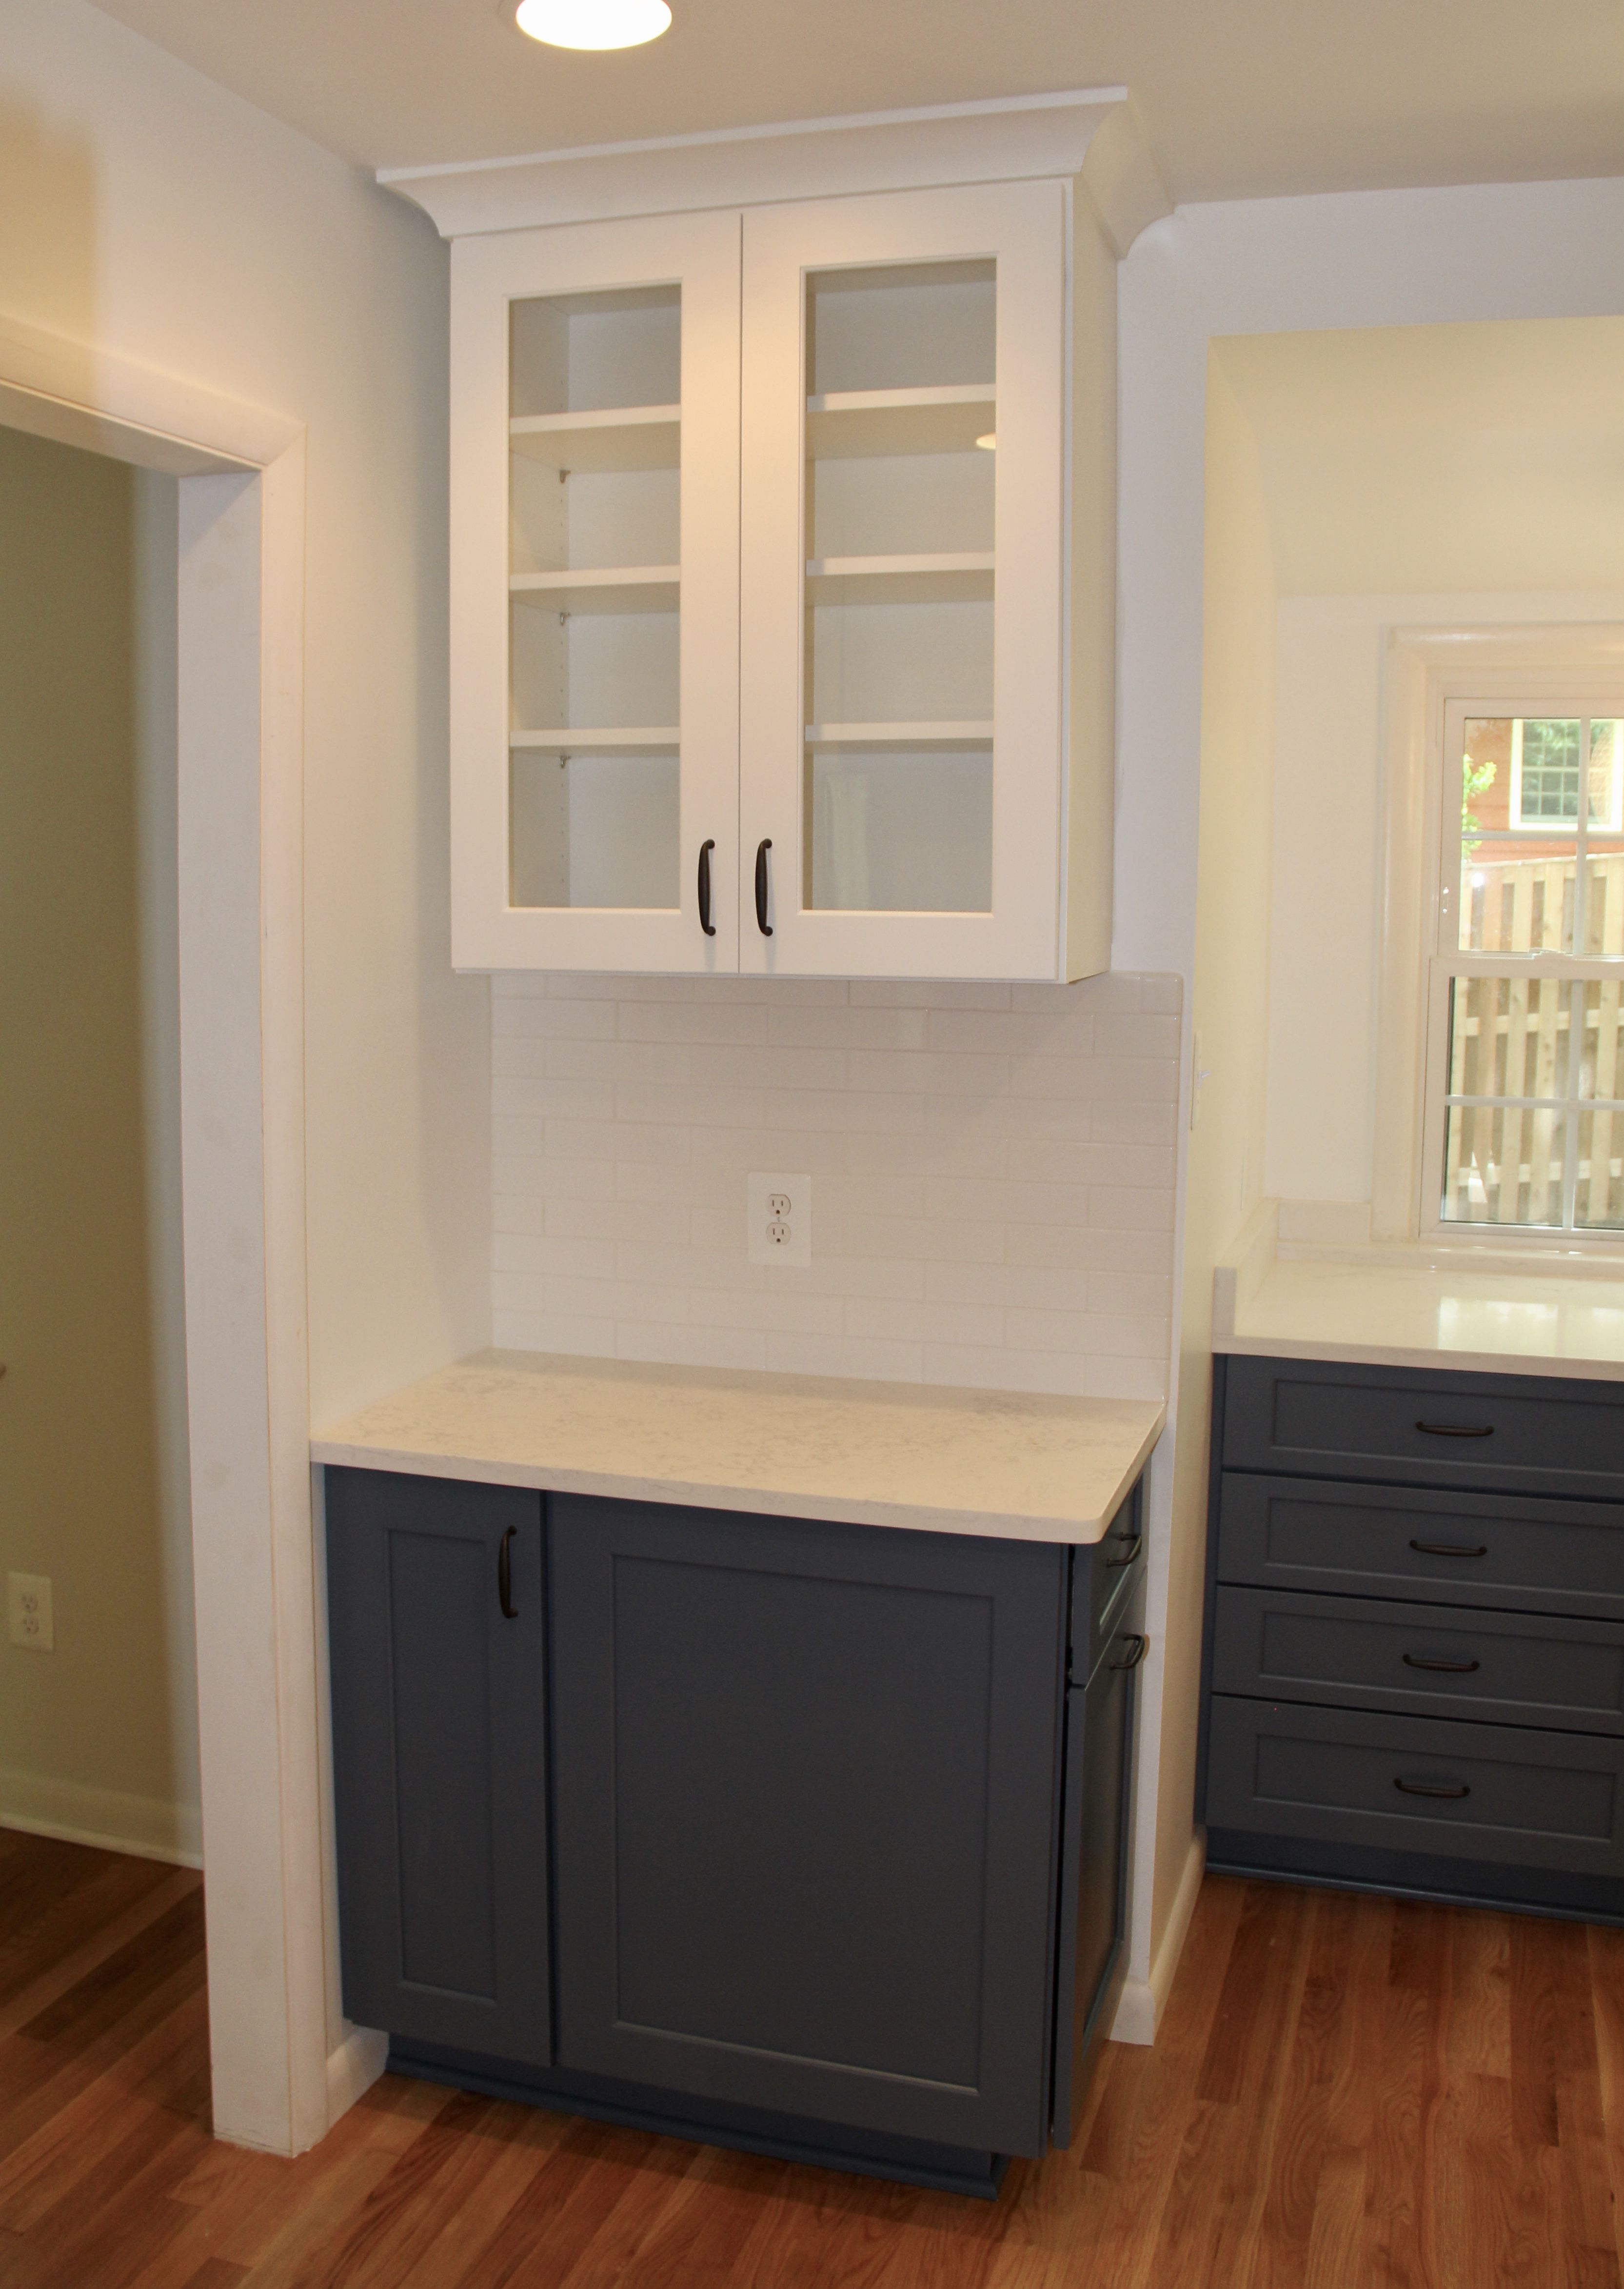 Brighton Cabinetry Cadet Blue And Chantilly Lace Cabinetry White Cabinets Kitchen Remodel